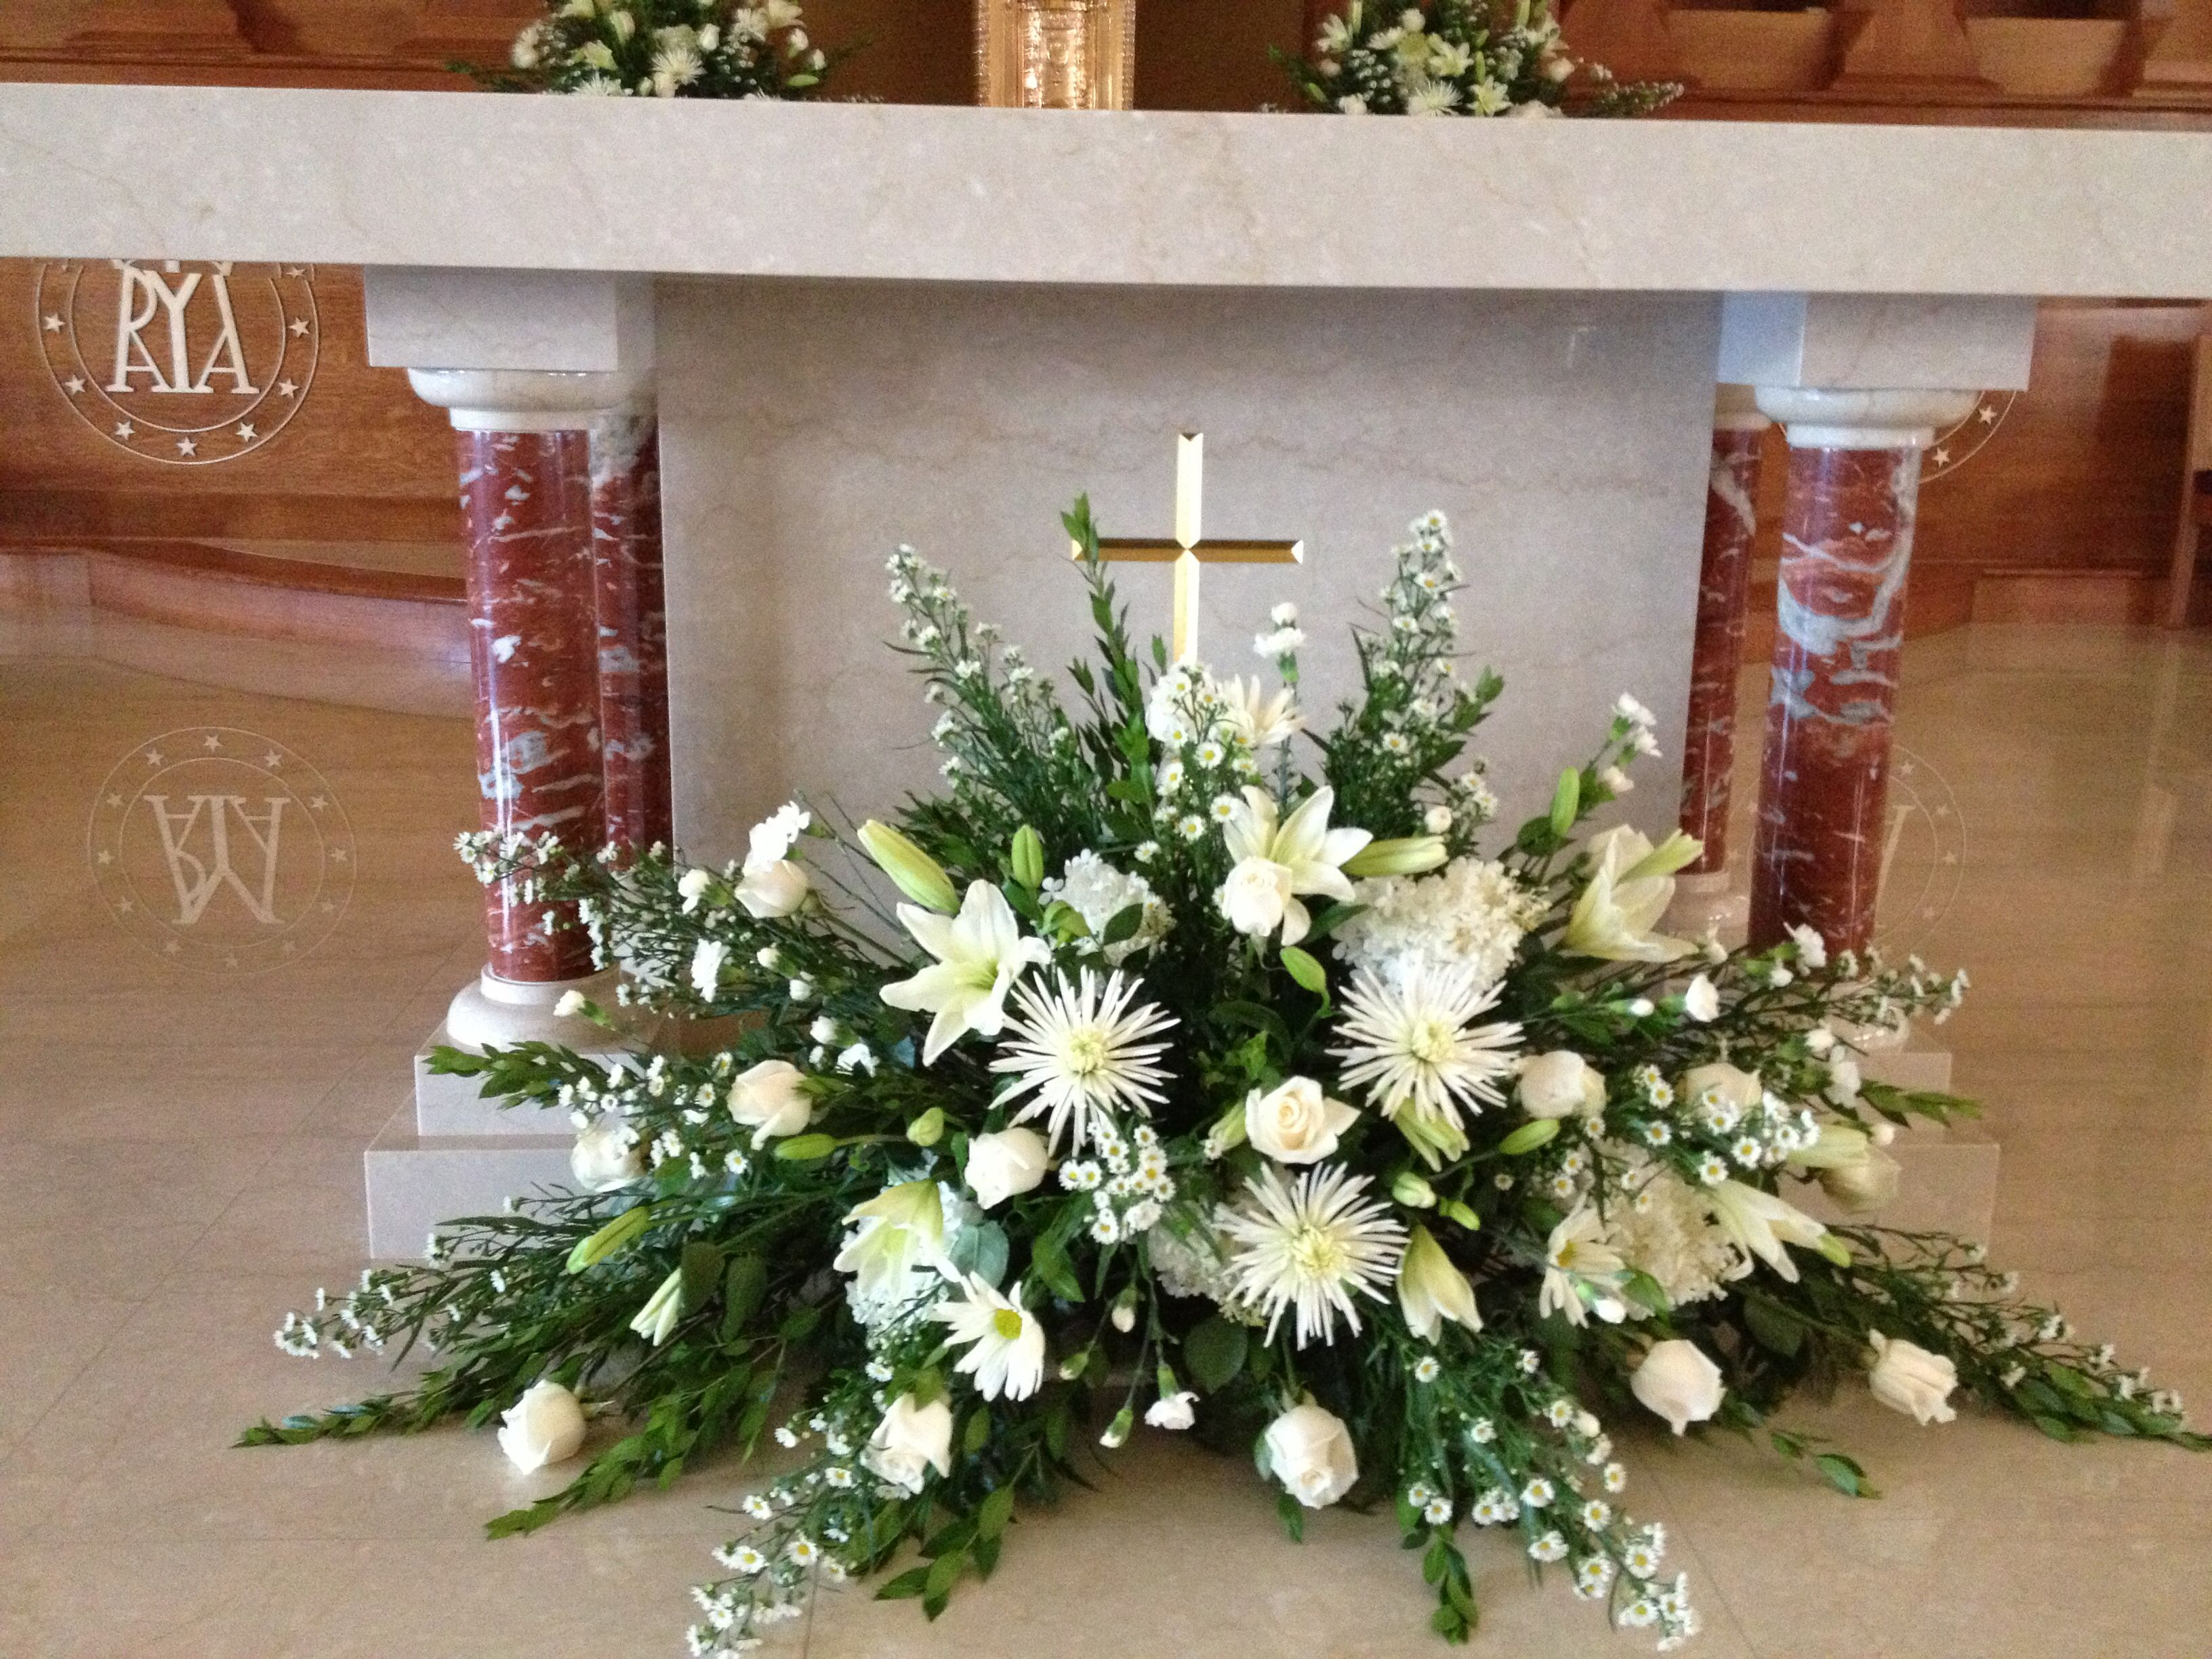 Church arrangement floral arrangements pinterest churches church arrangement church flower arrangementsaltar flowerschurch flowersfuneral izmirmasajfo Image collections